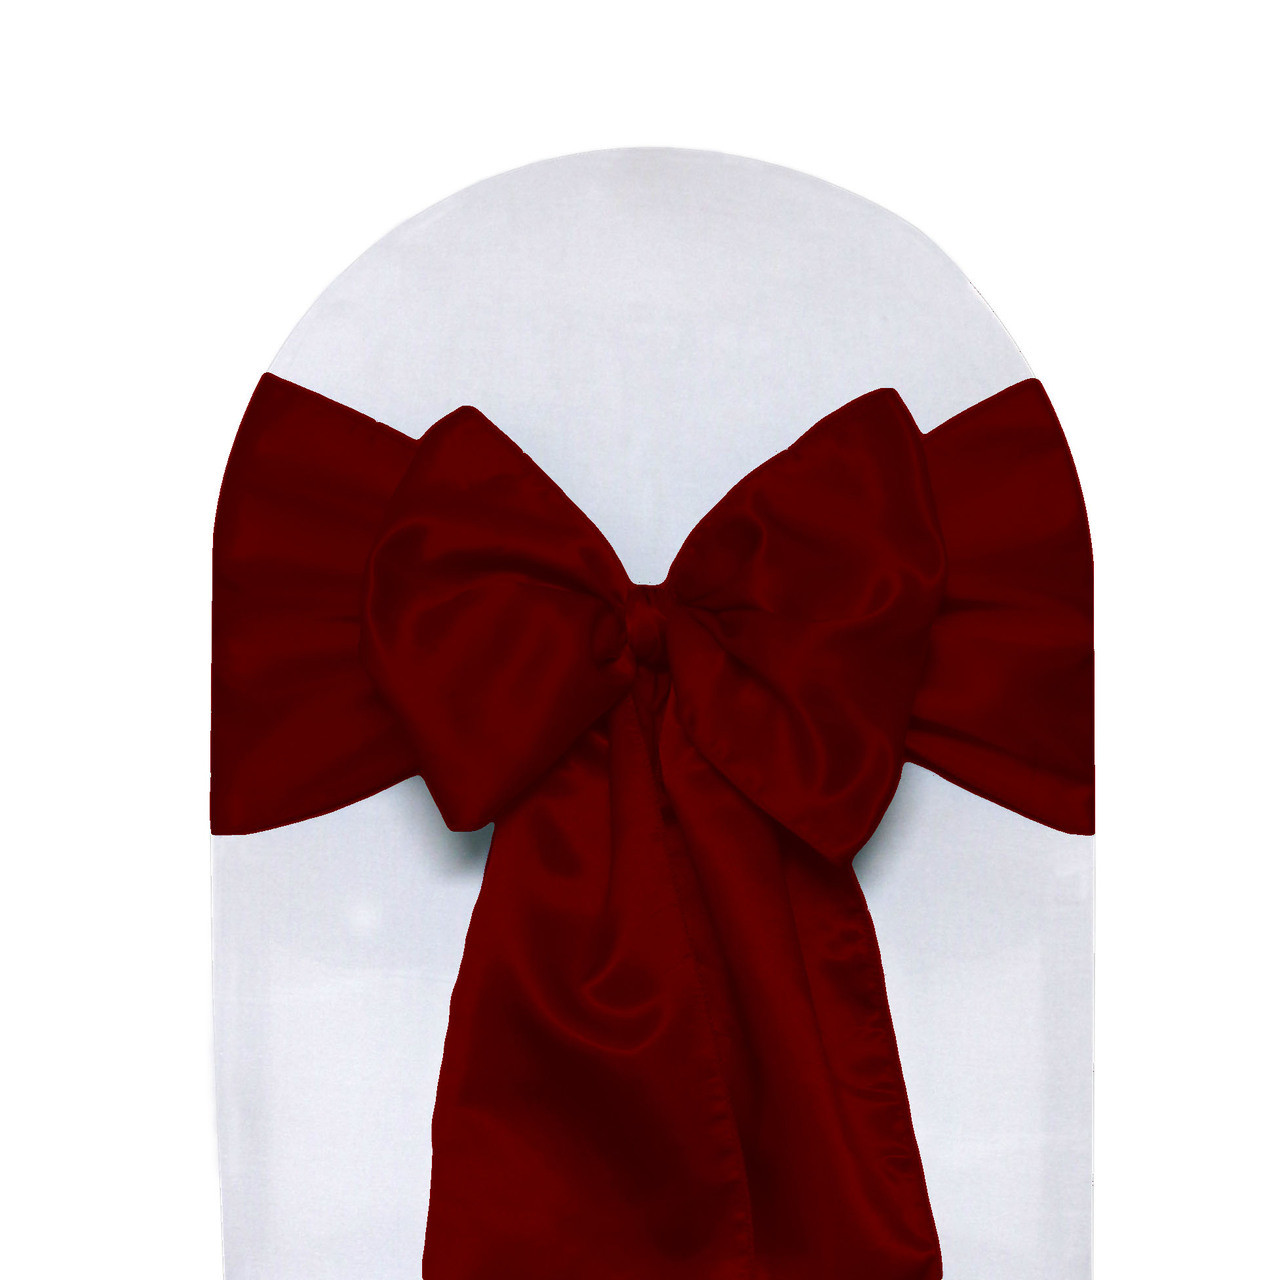 e995e4456b1cfc 10 Pack Satin Sashes Dark Red - Your Chair Covers Inc.